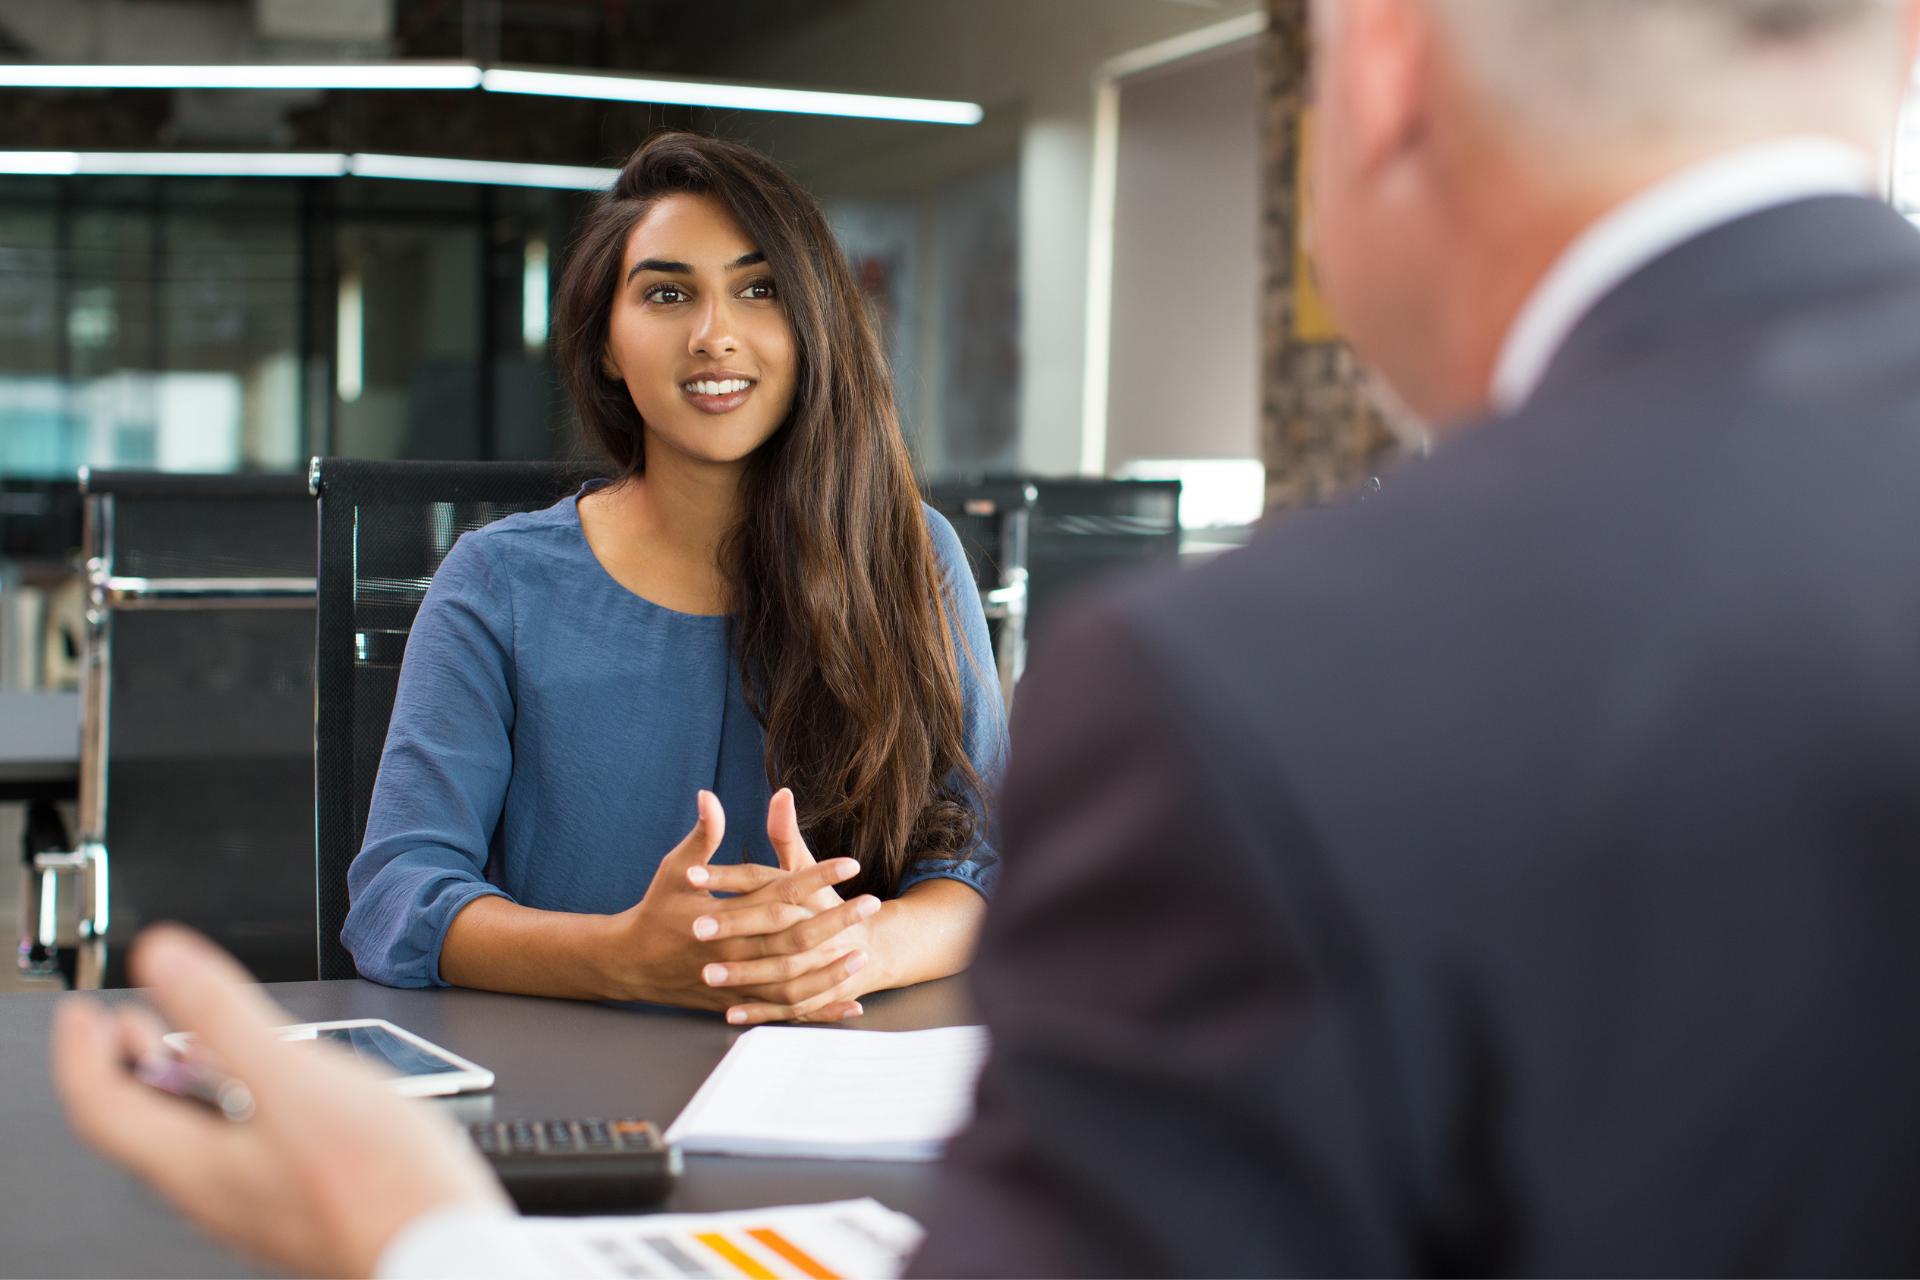 A Human Resources Manager interviewing a person for a job.